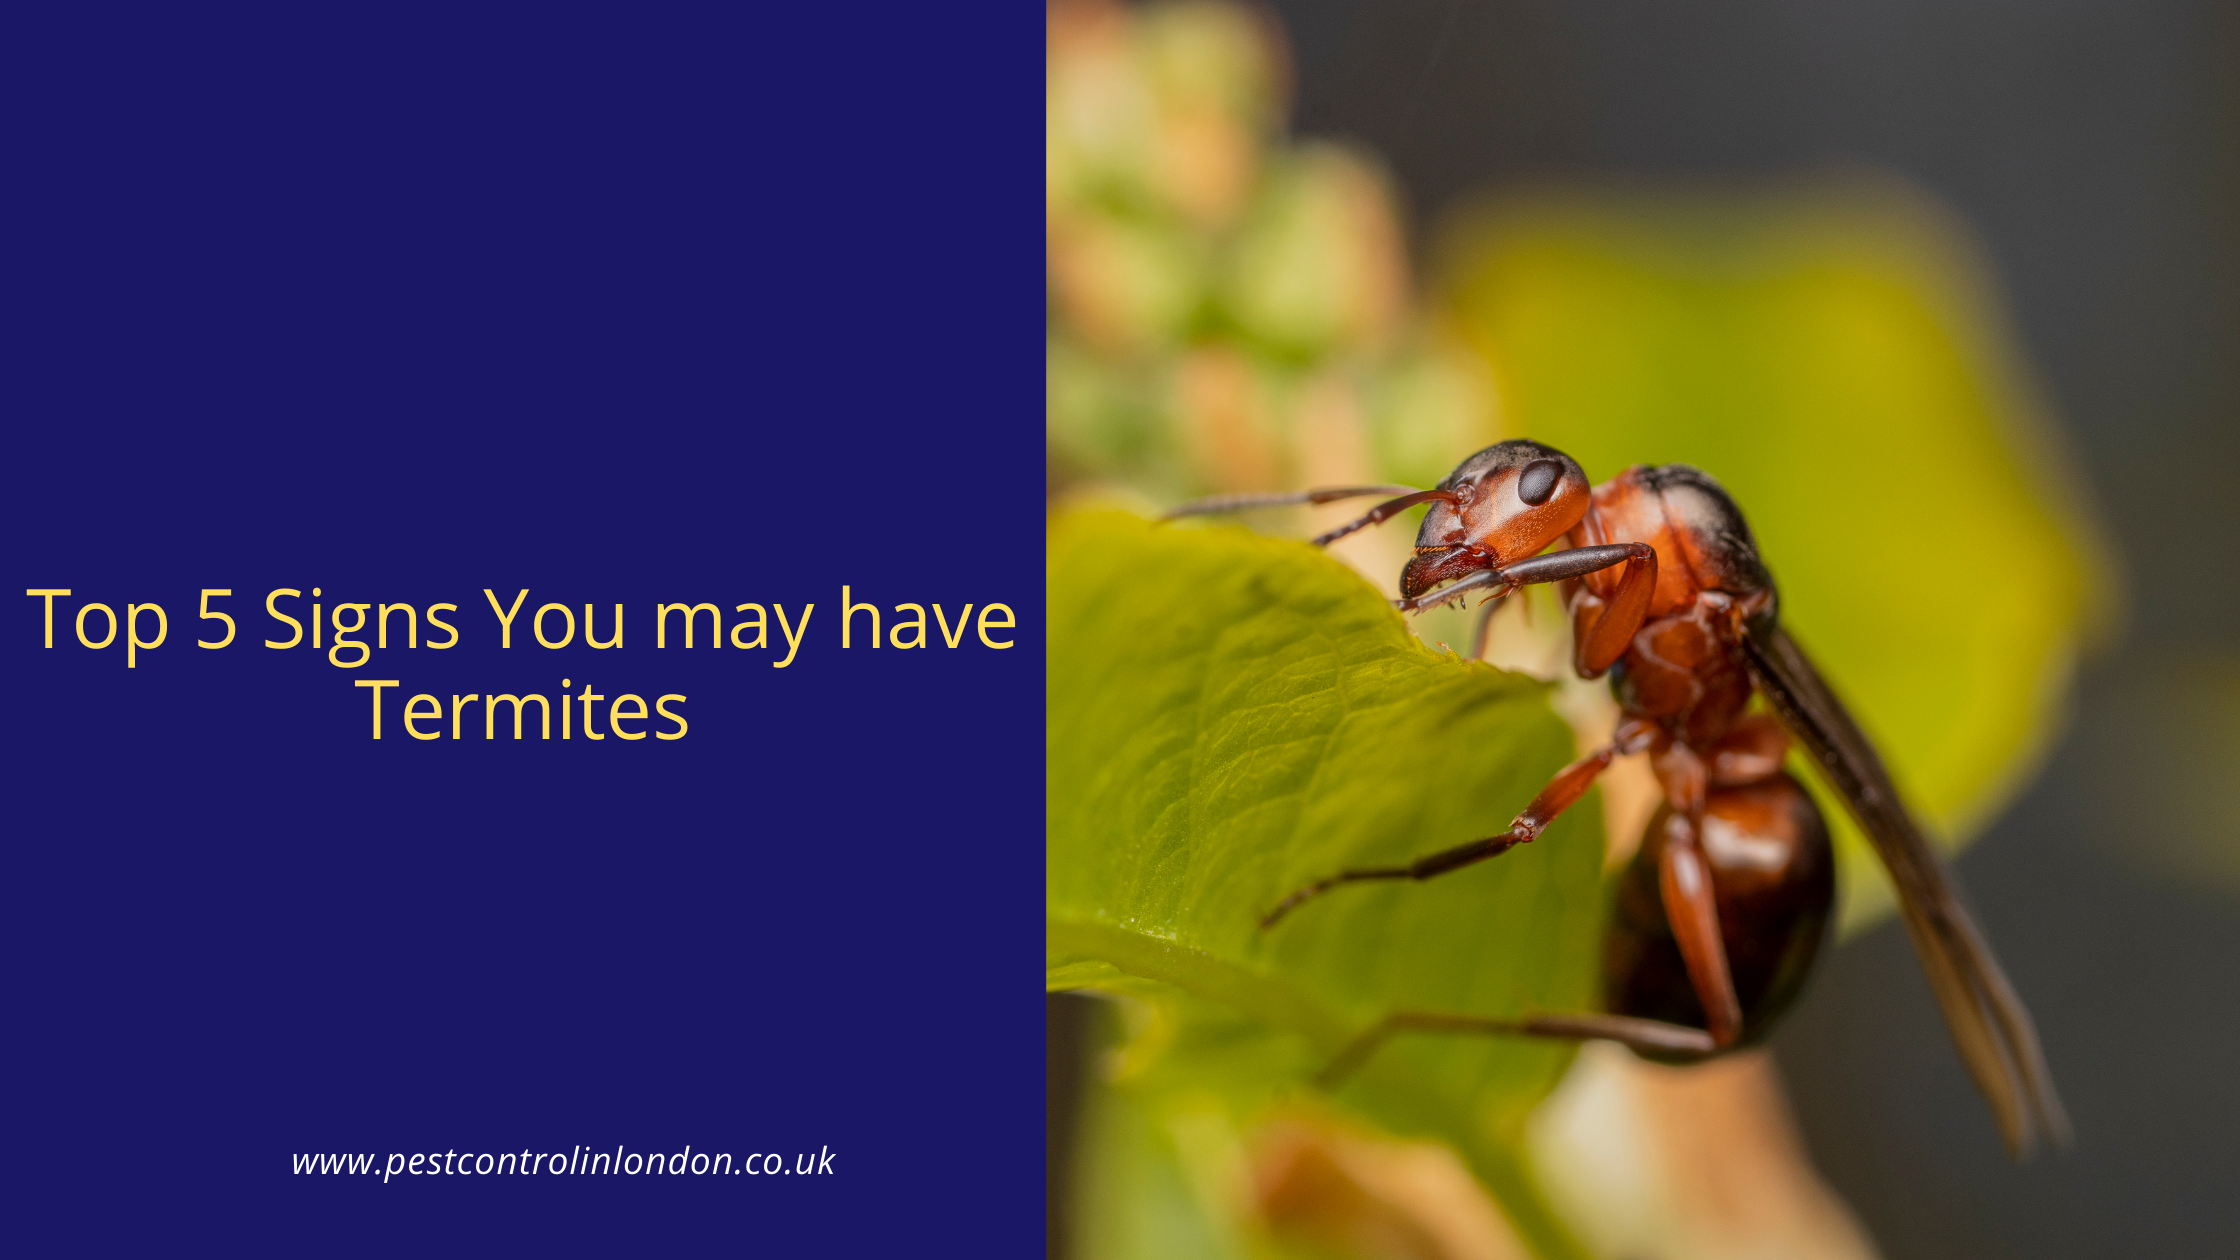 Top 5 Signs You may have Termites